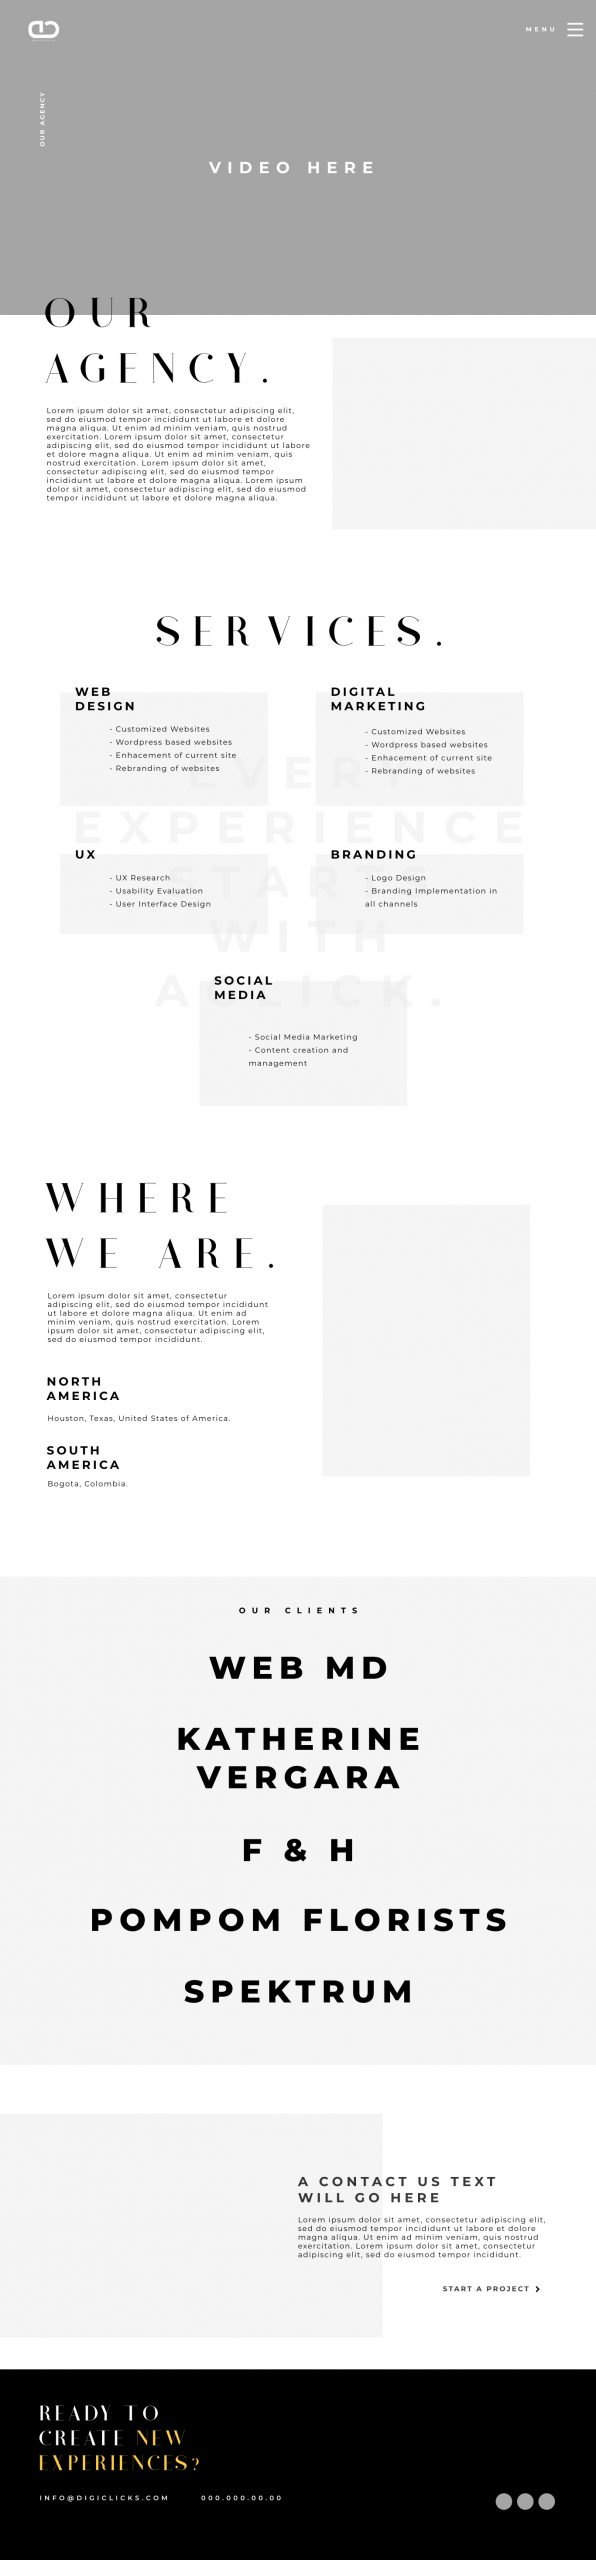 The_Agency_wireframes_dc